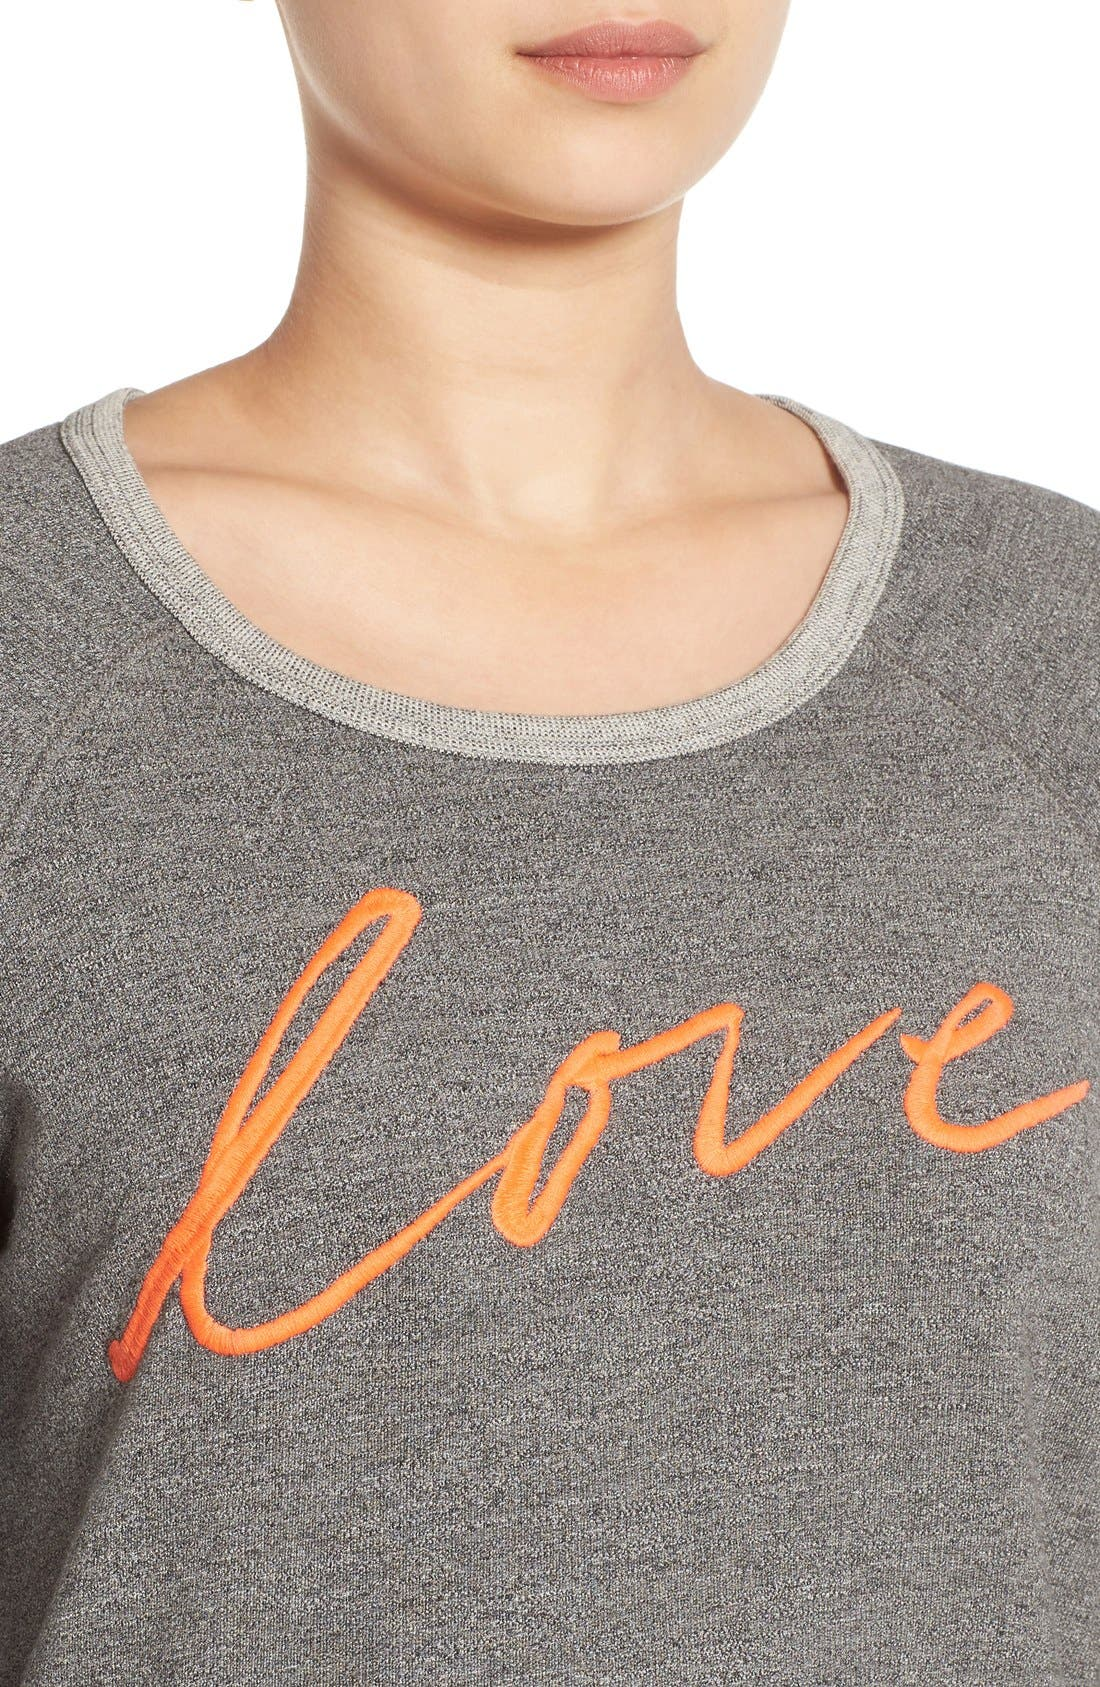 'Love' Pullover Sweatshirt,                             Alternate thumbnail 3, color,                             039